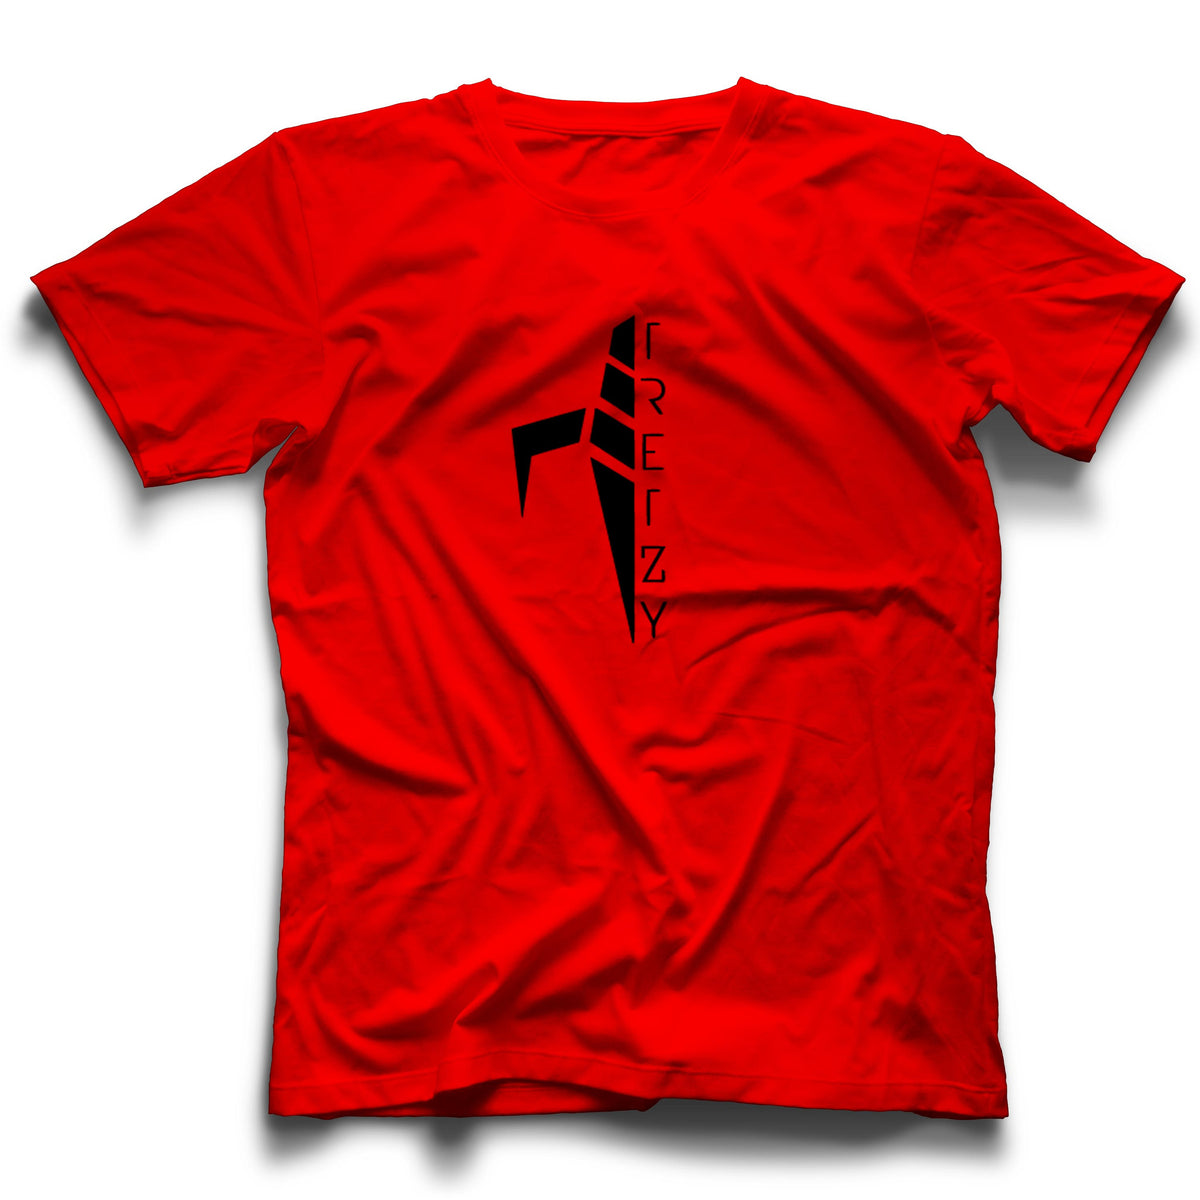 Double Tretzy T shirt